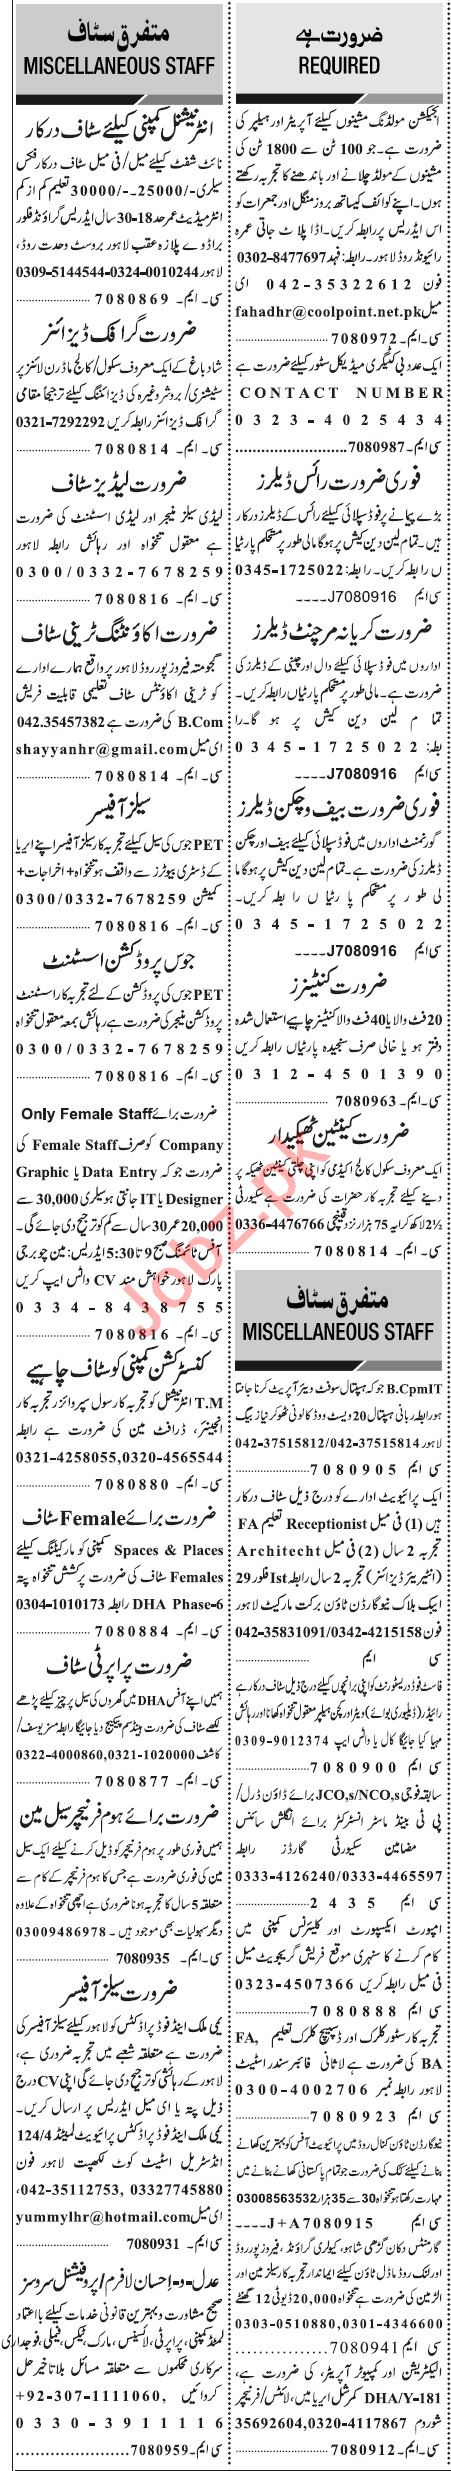 Jang Sunday Classified Ads 8th March 2020 for General Staff